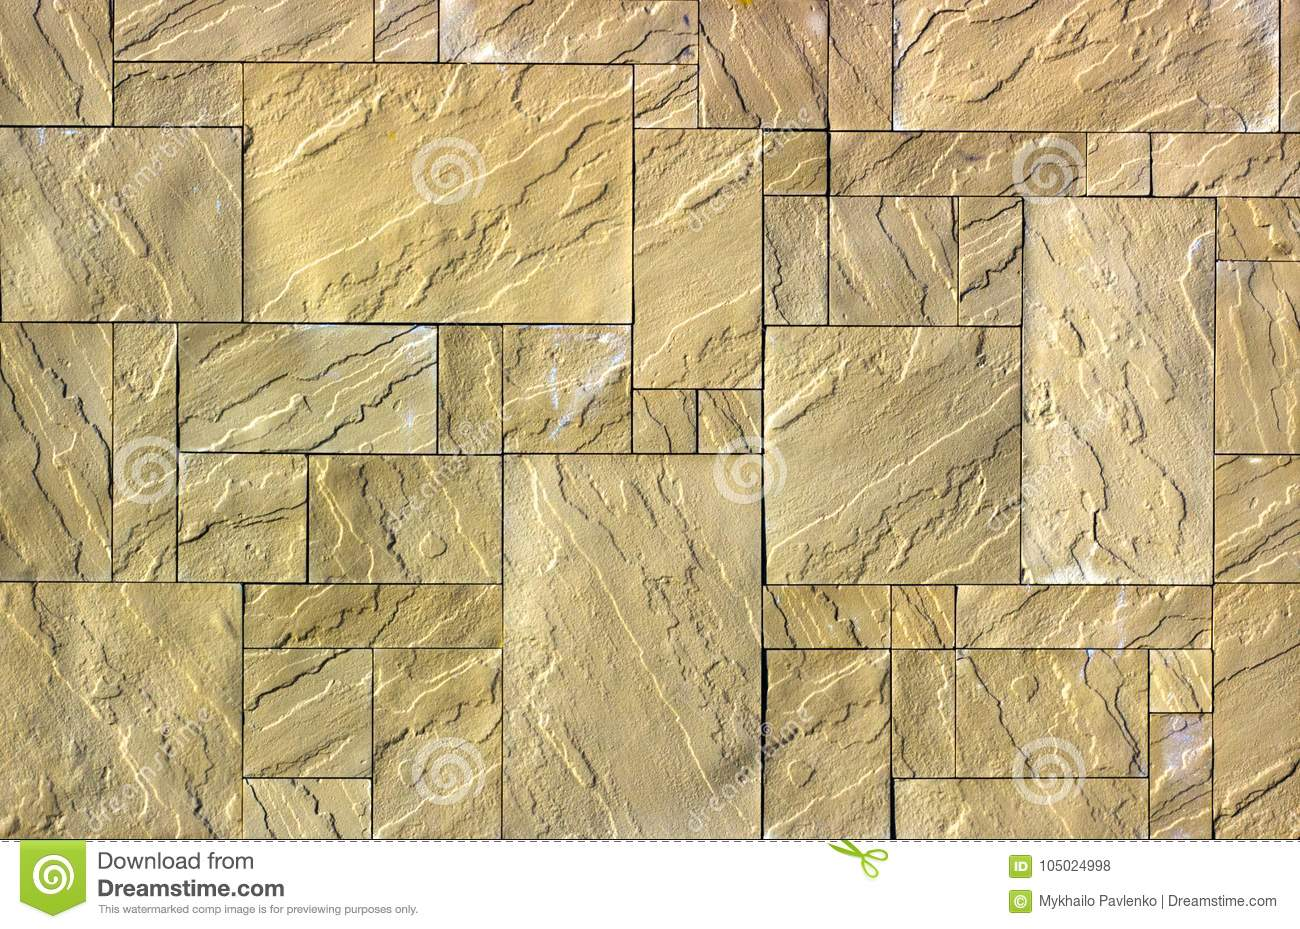 Artistic Sandstone Wall Texture Background Patterns Stock Photo ...